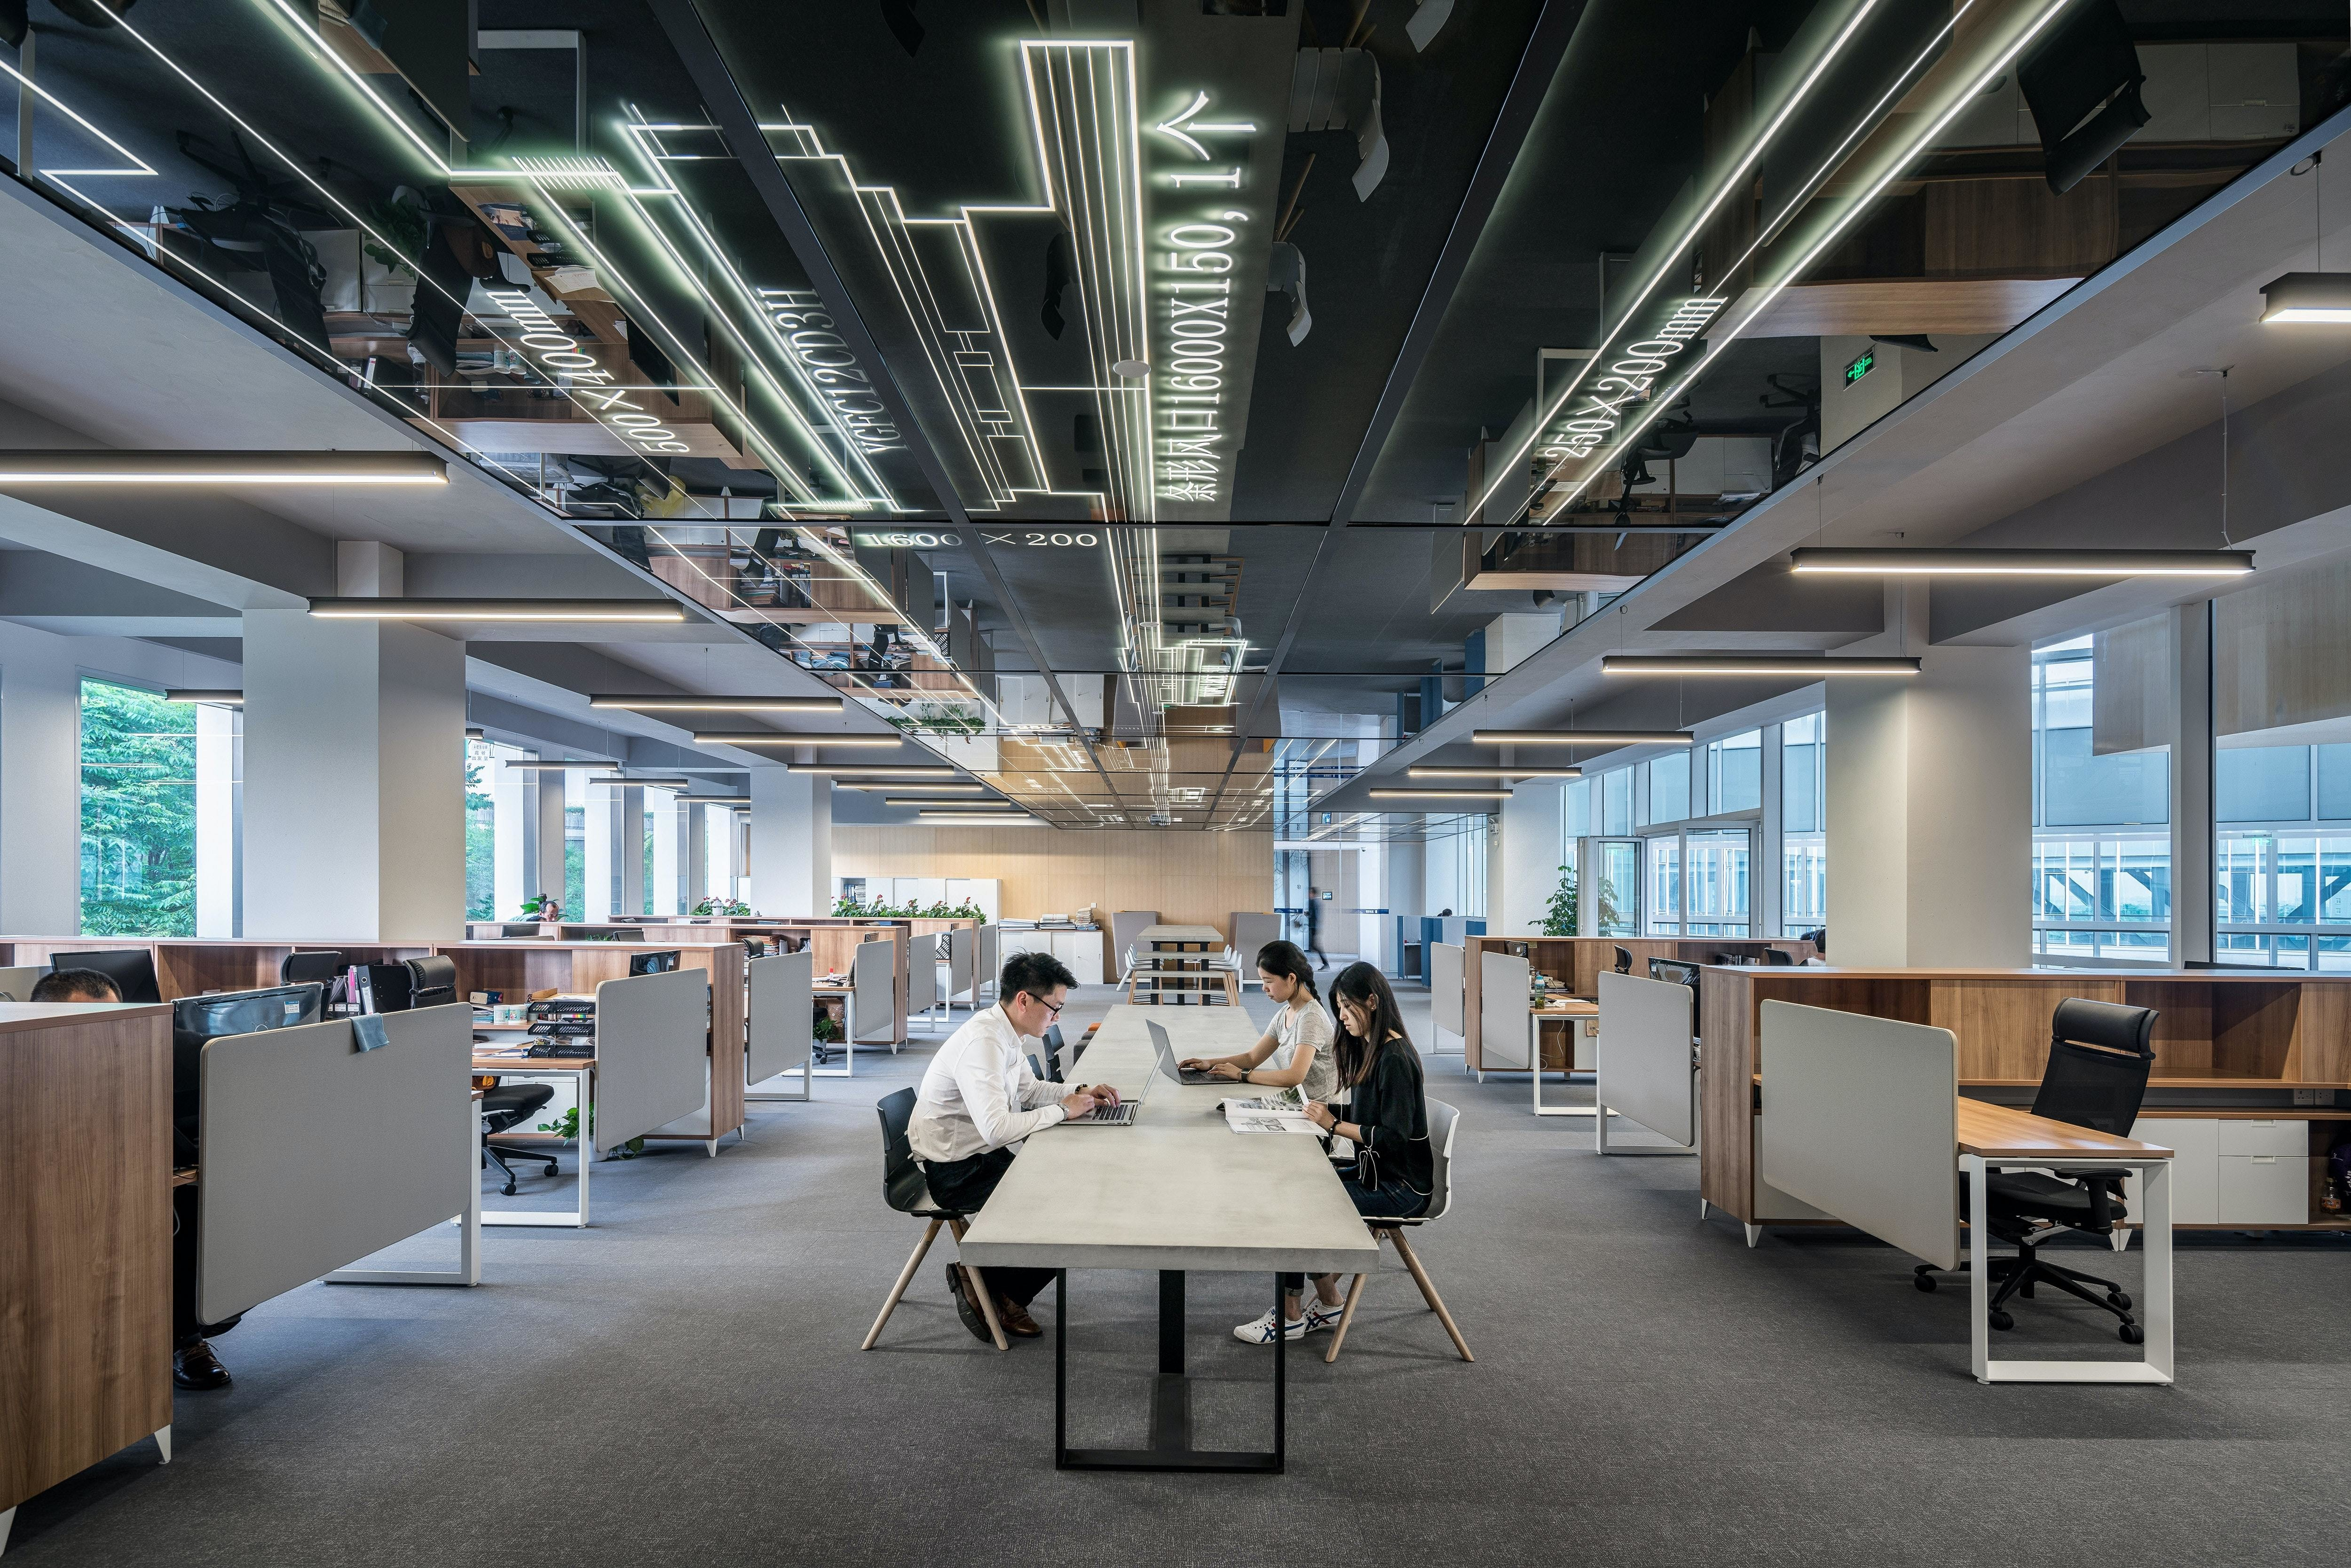 Employees sitting in an open plan modern office working